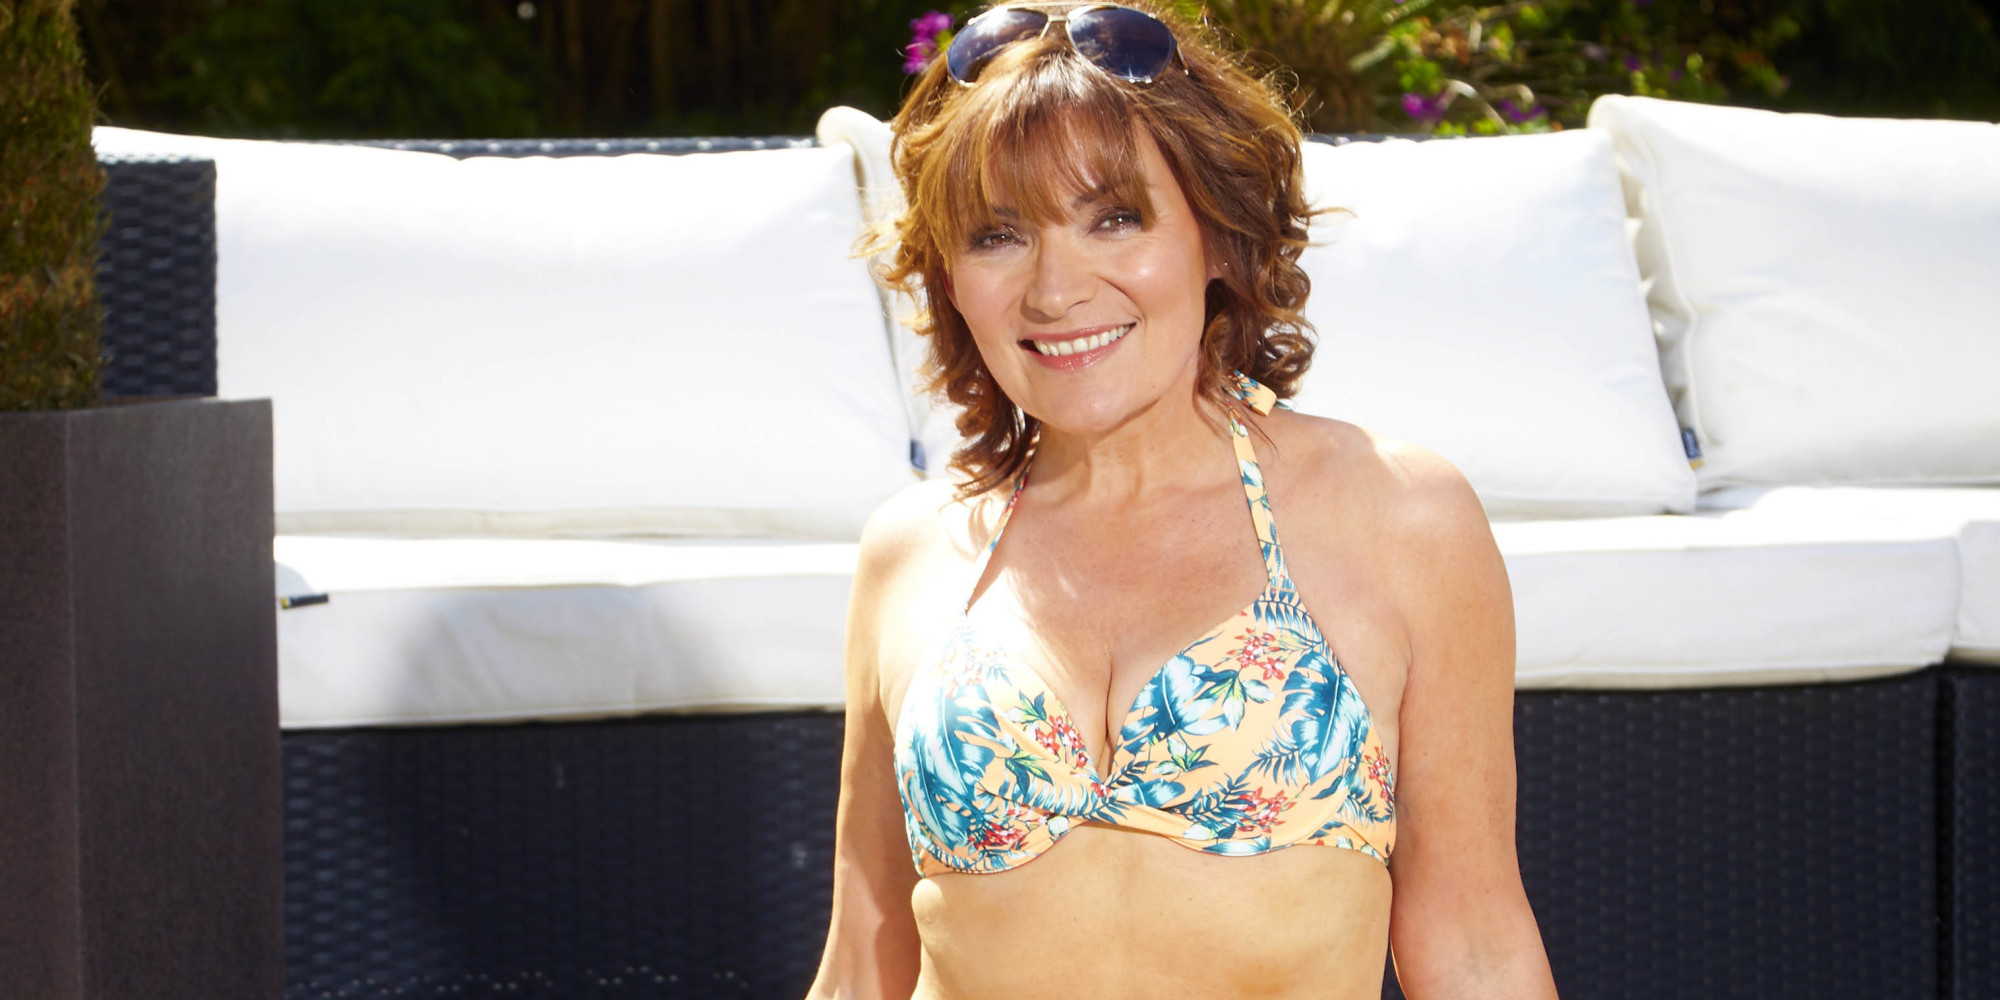 Lorraine Kelly's plastic surgery reveal: I'd never have Botox - BT